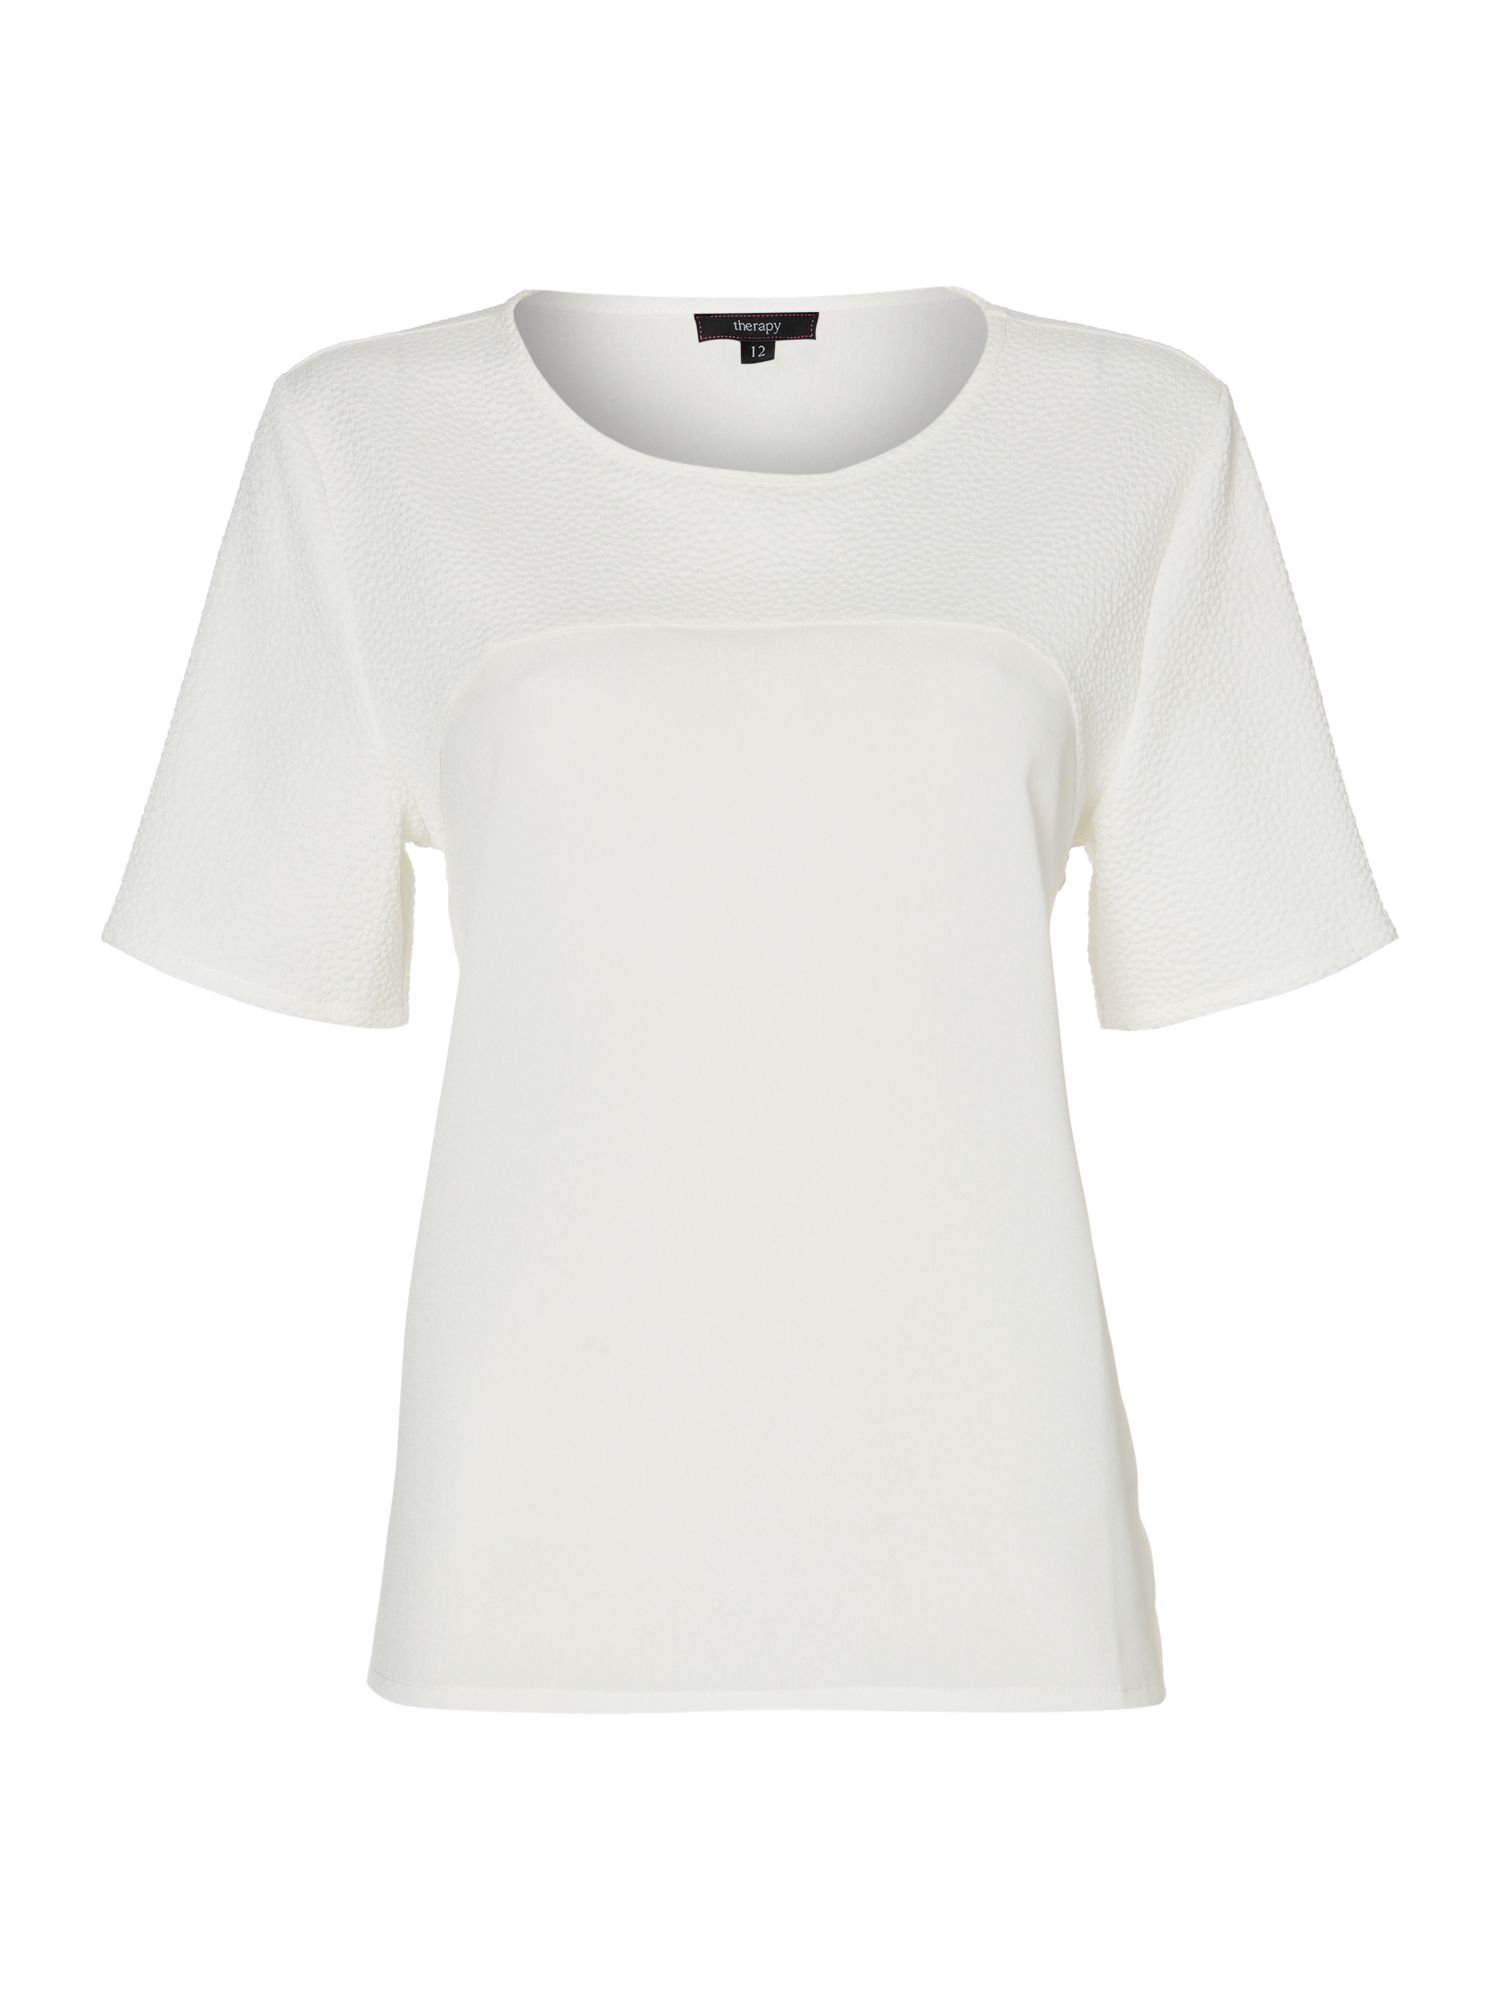 Textured t-shirt blouse